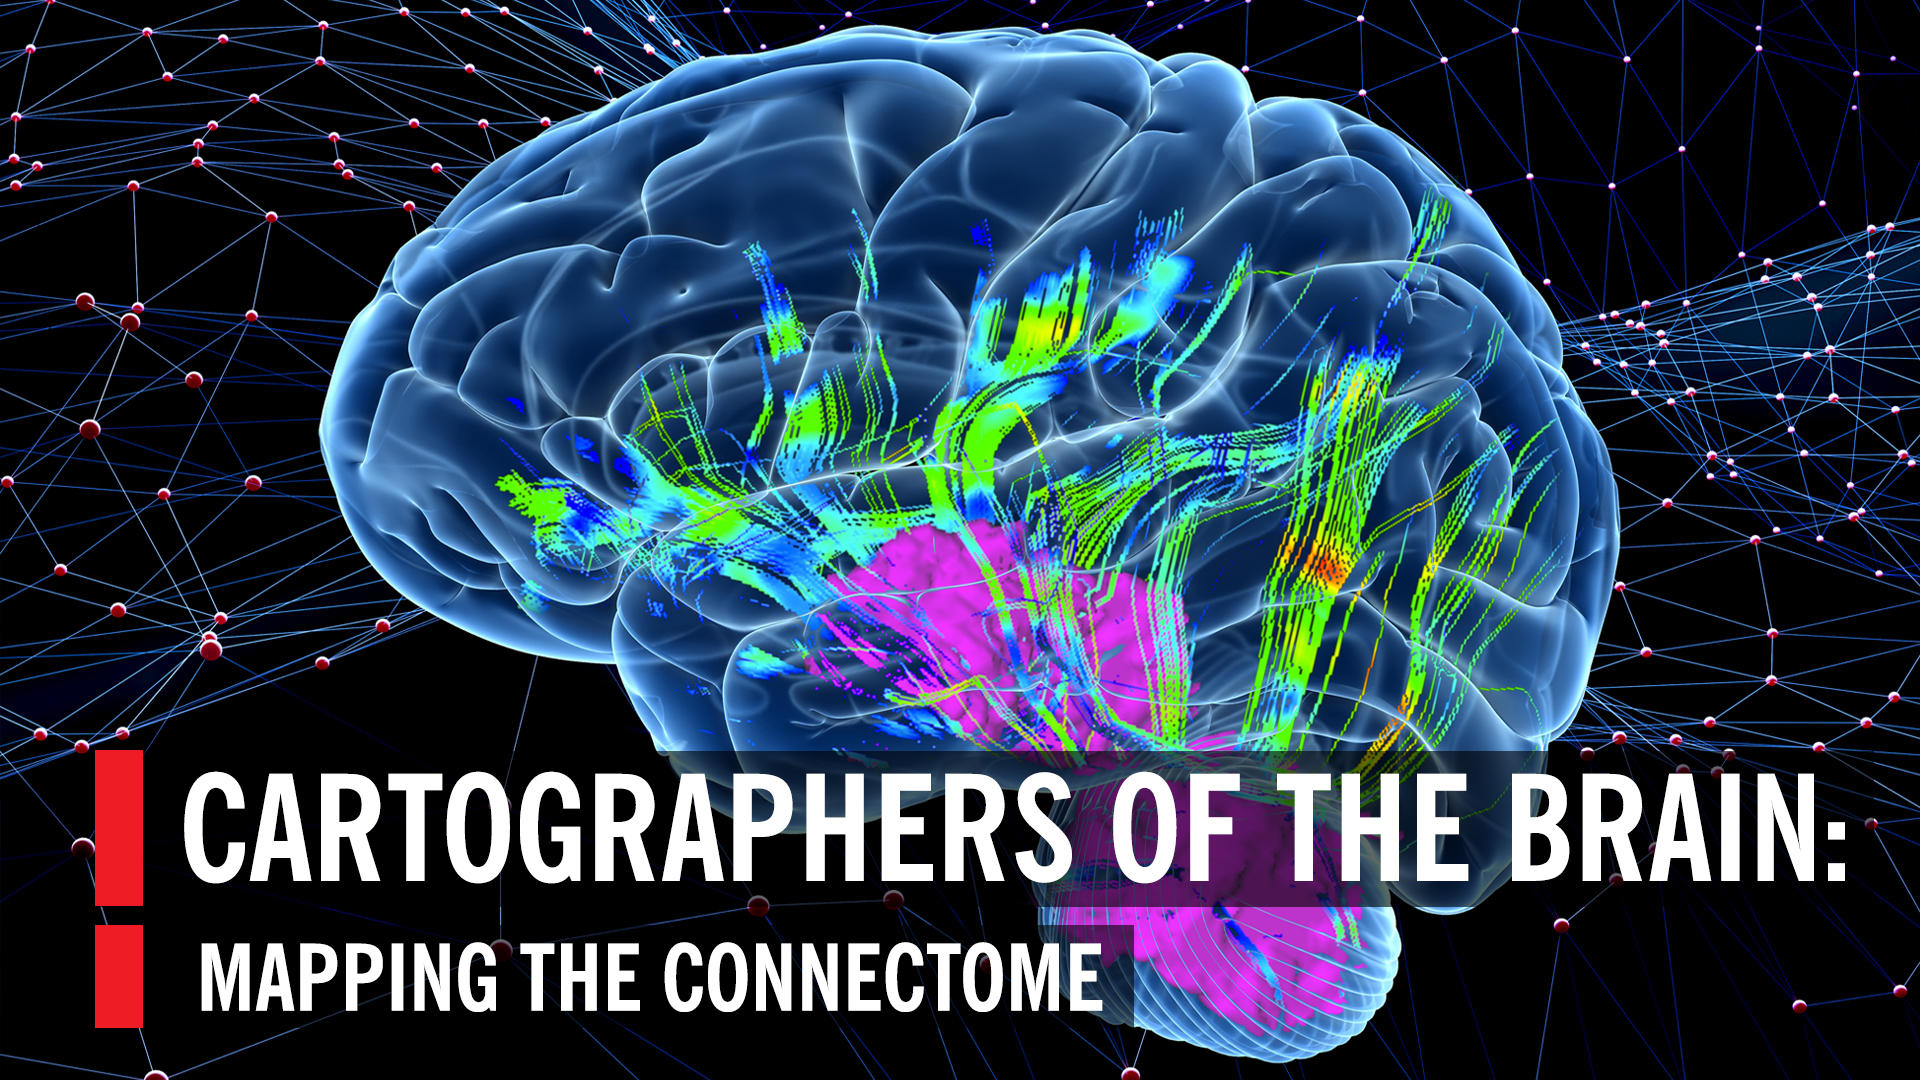 Cartographers of the Brain: Mapping the Connectome | World Science ...